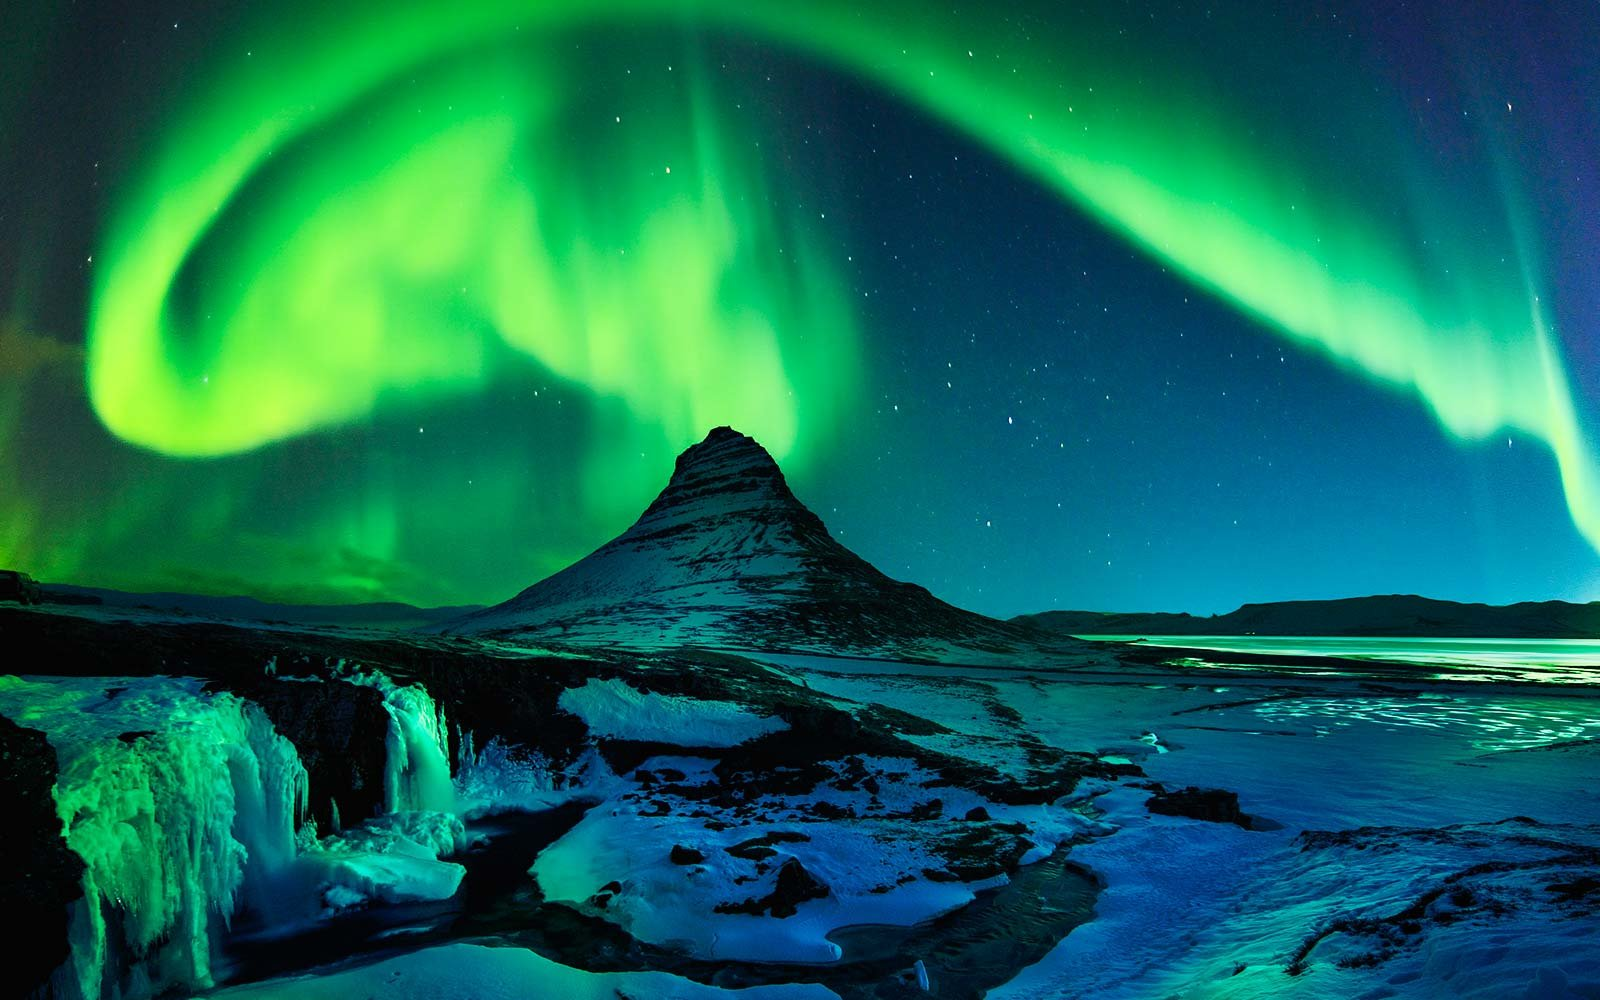 Iceland says don't stare at the Northern Lights